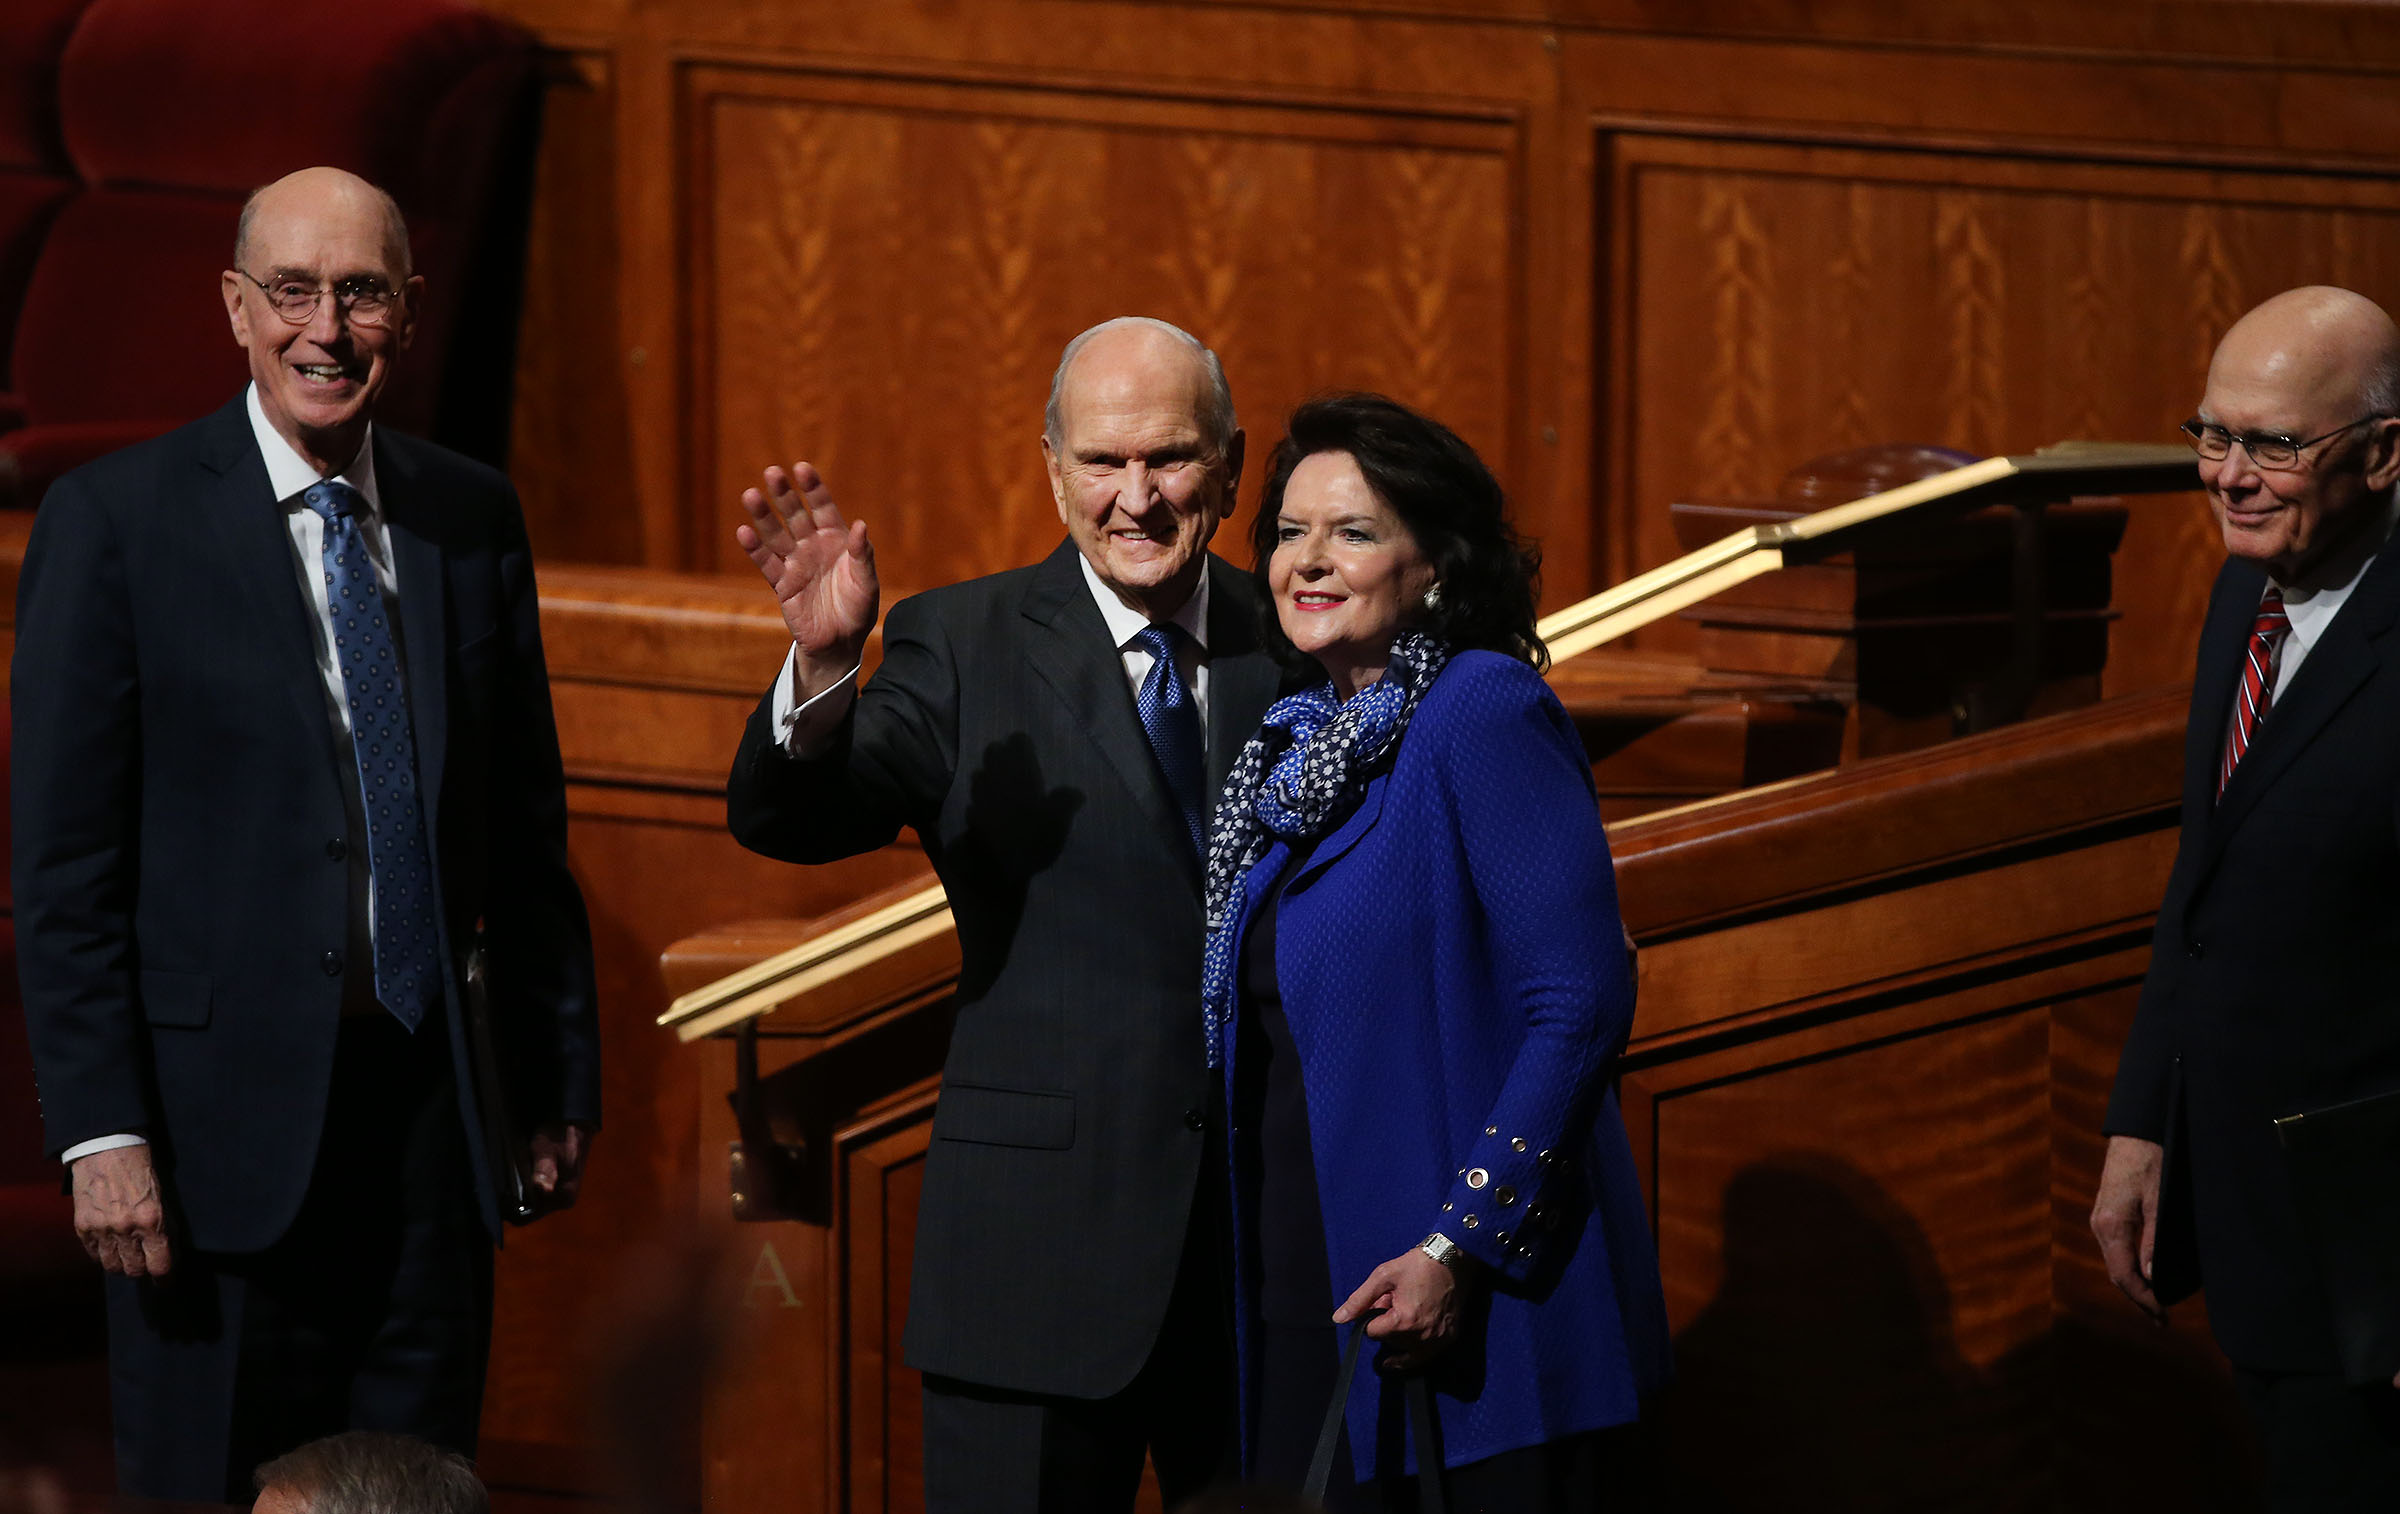 President Henry B. Eyring, left, second counselor in the First Presidency, President Russell M. Nelson and his wife, Sister Wendy Nelson, and President Dallin H. Oaks, first counselor in the First Presidency, wave to the audience after the general women's session of the 188th Semiannual General Conference of The Church of Jesus Christ of Latter-day Saints held in the Conference Center in downtown Salt Lake City on Saturday, Oct. 6, 2018.